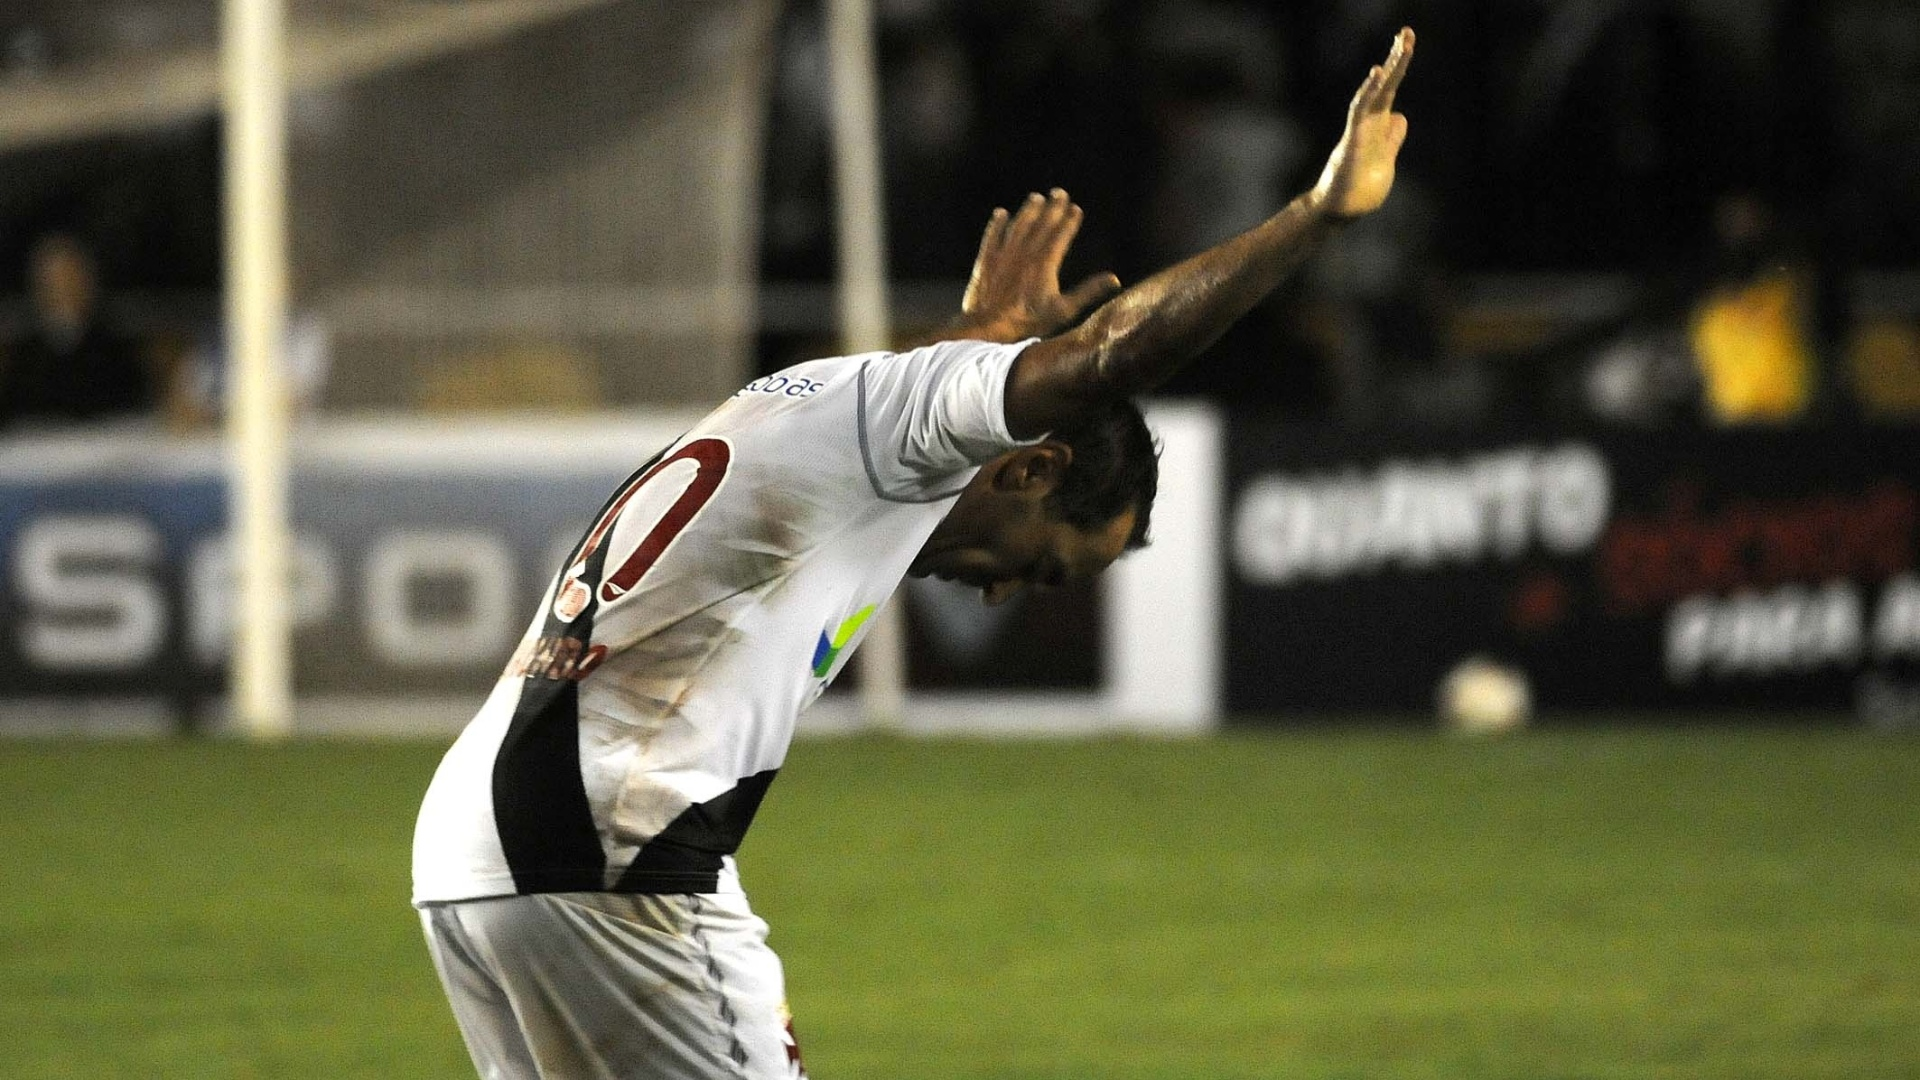 Edmundo comemora depois de marcar no jogo de despedida pelo Vasco, contra o Barcelona (EQU)